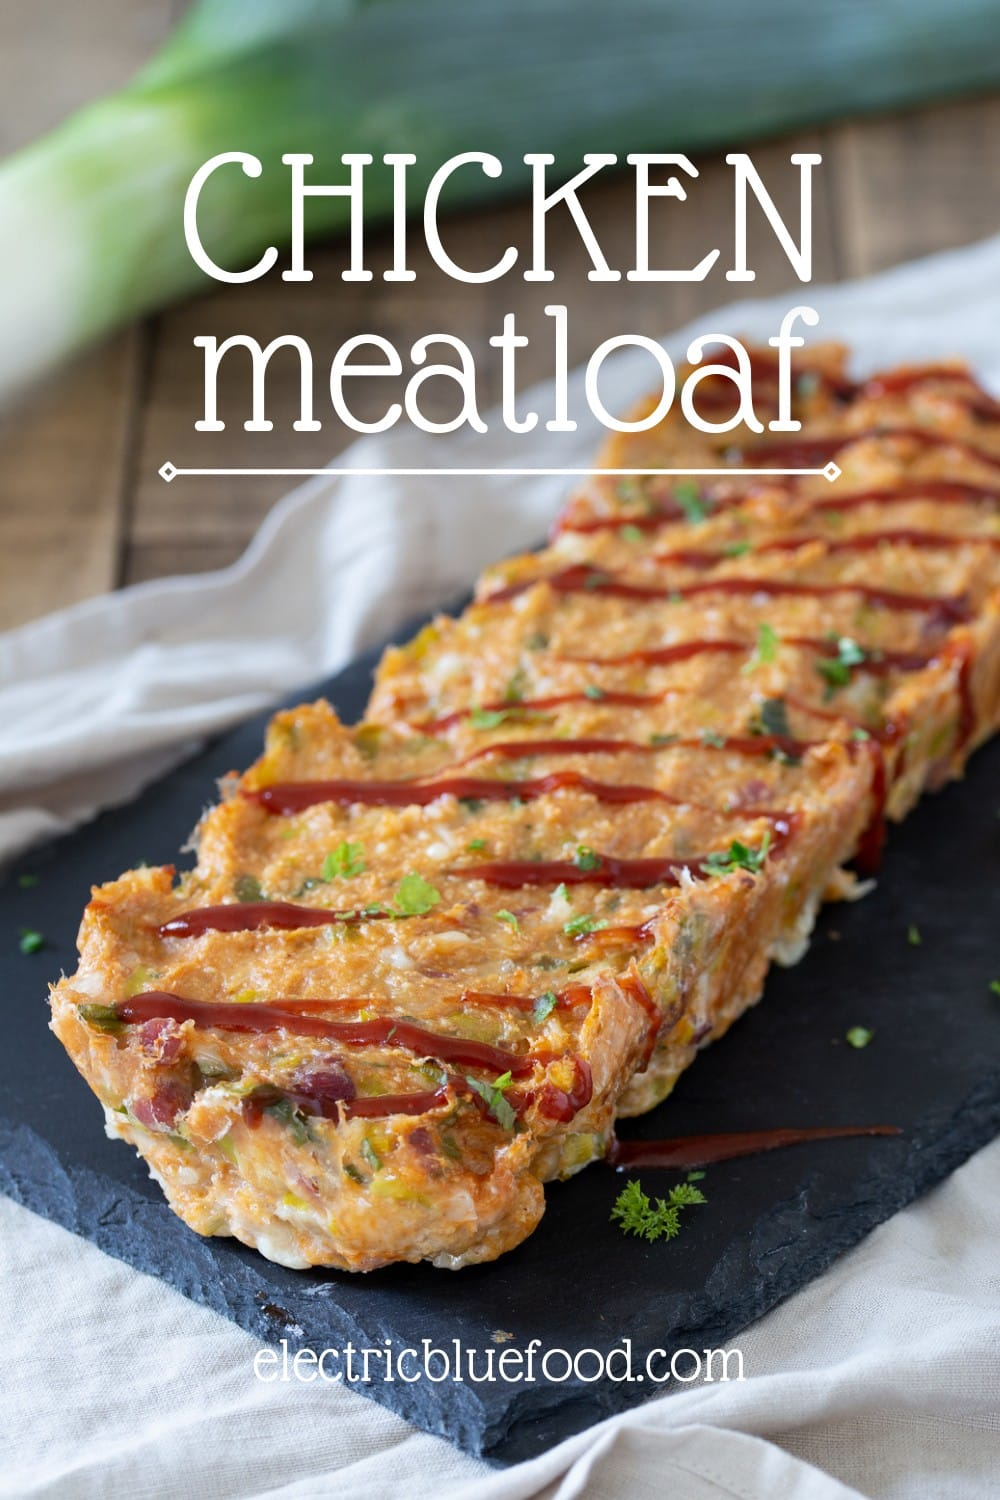 Chicken meatloaf with bacon and leeks.